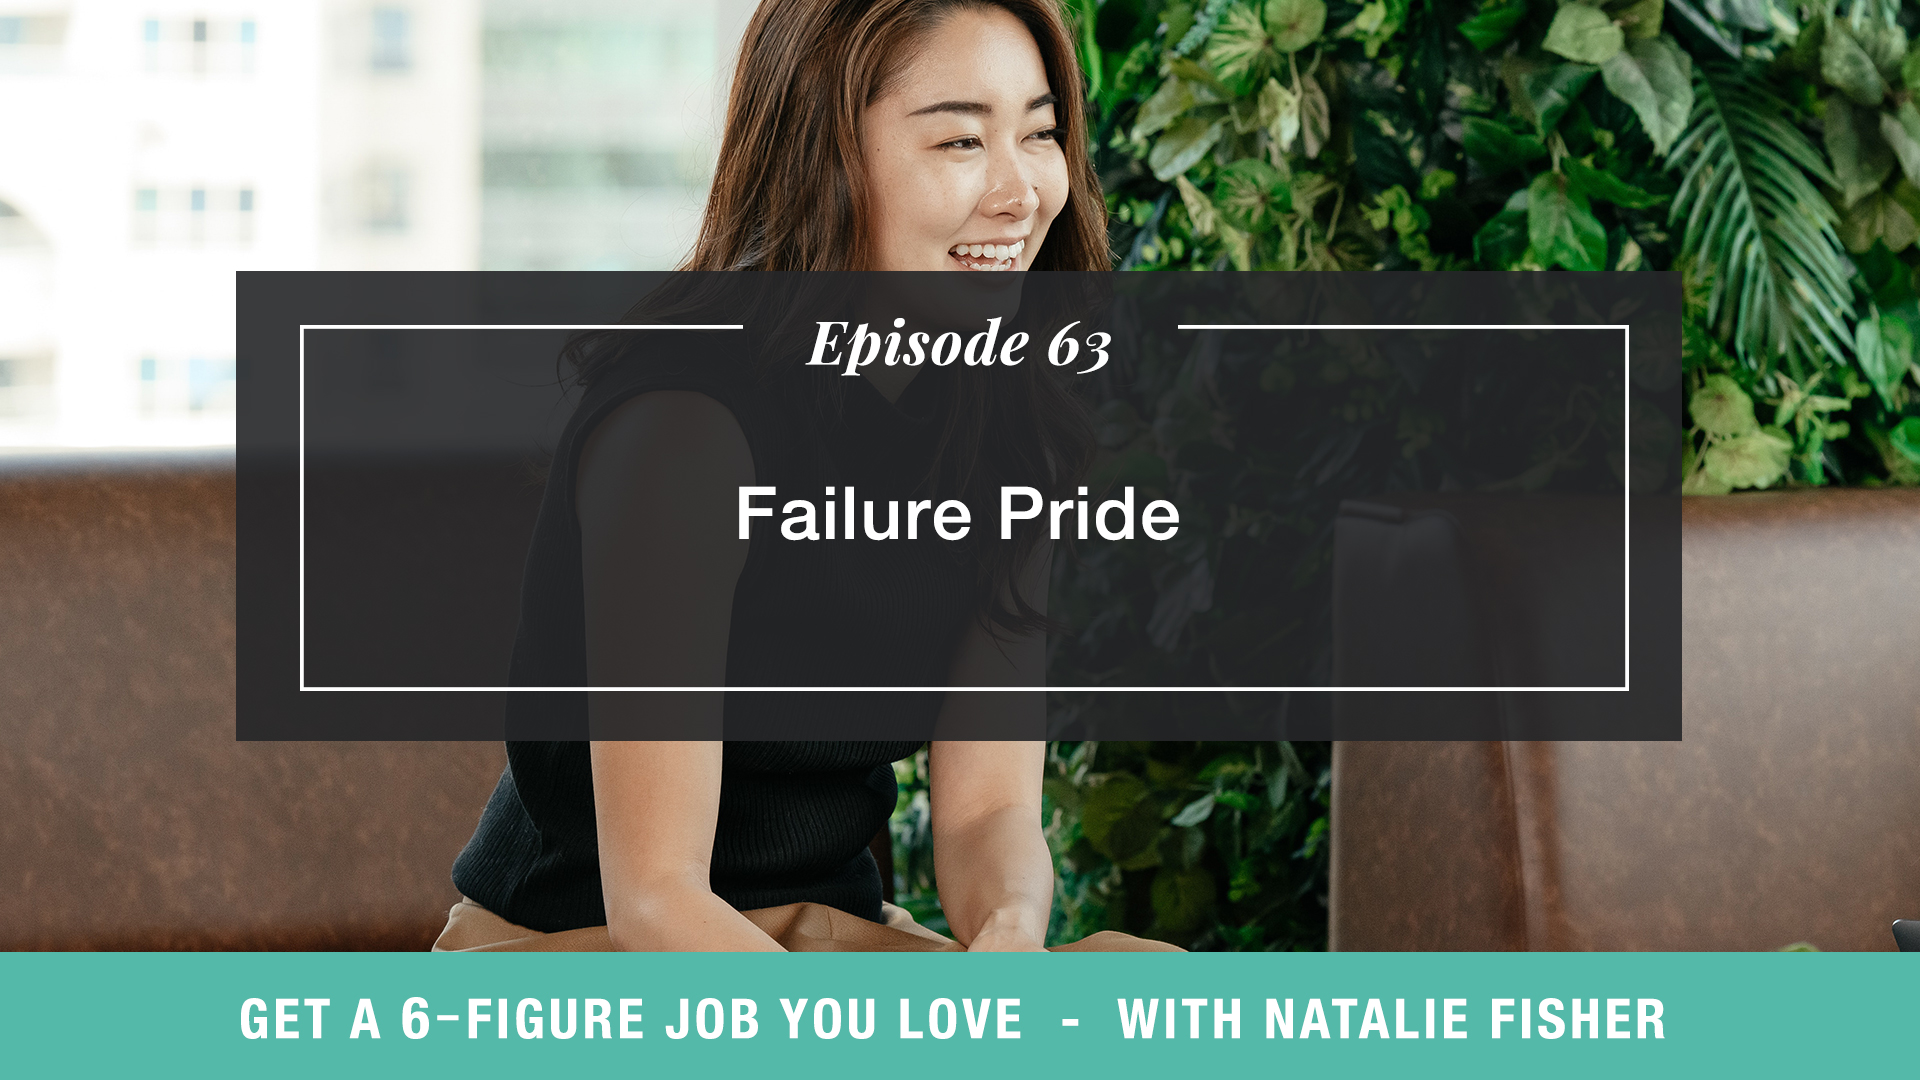 The Get a Six Figure Job You Love Podcast with Natalie Fisher   Failure Pride